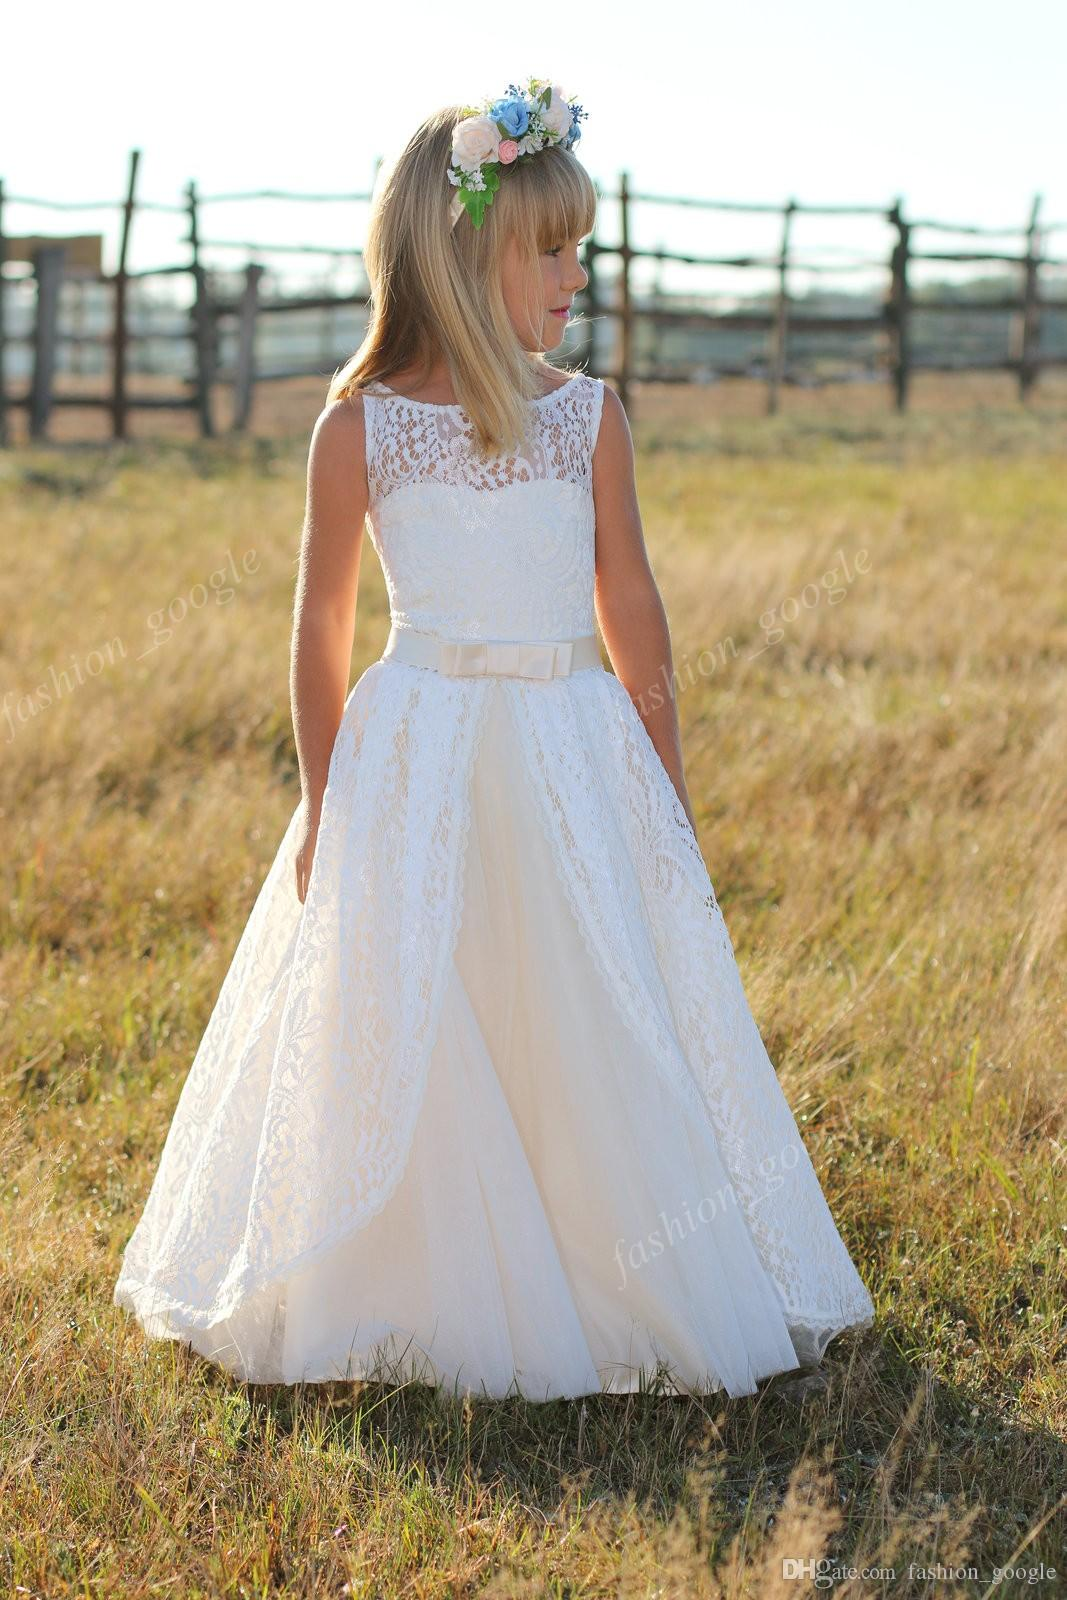 Lace Flower Girl Dresses Louise Bridal For Country